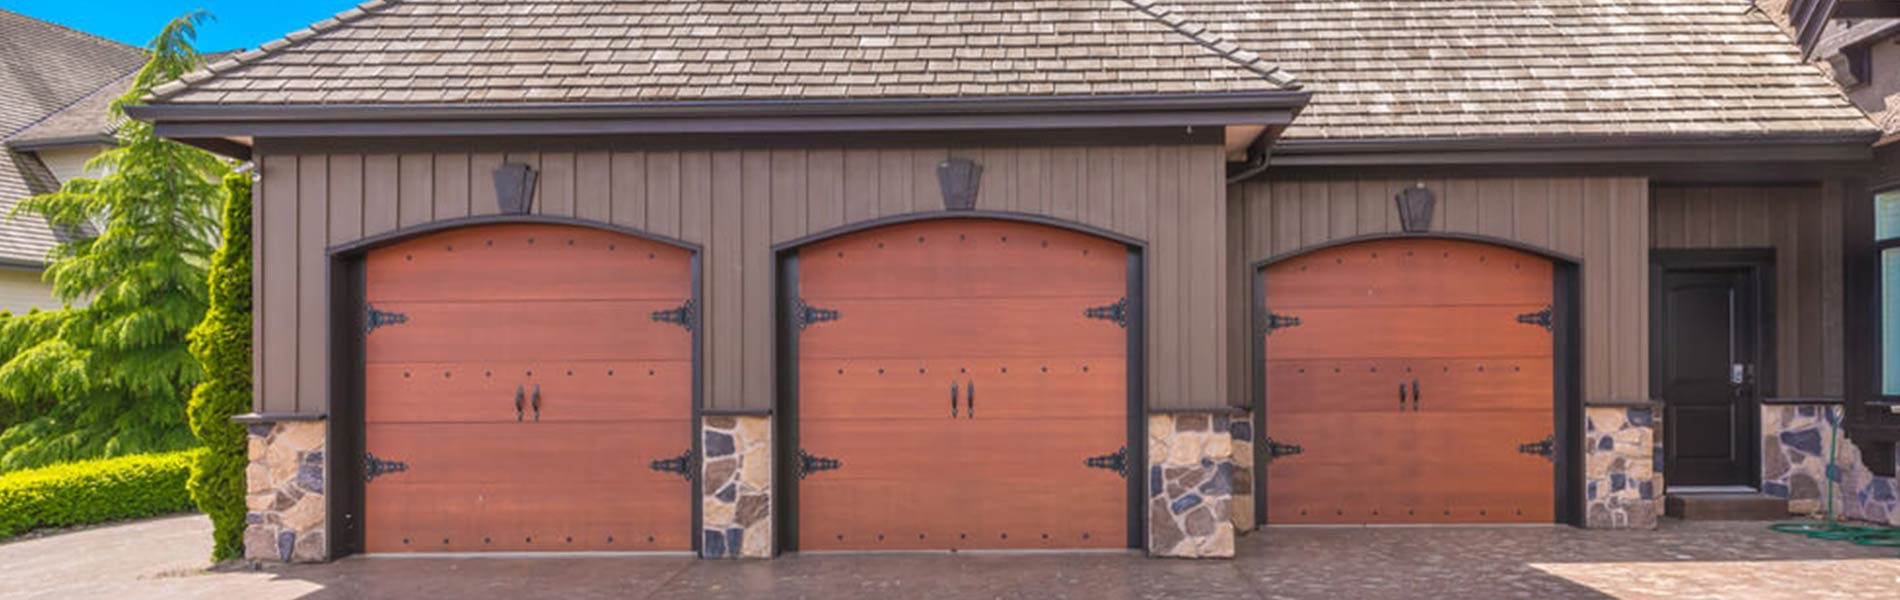 Golden Garage Door Service, Miami, FL 786-427-8764